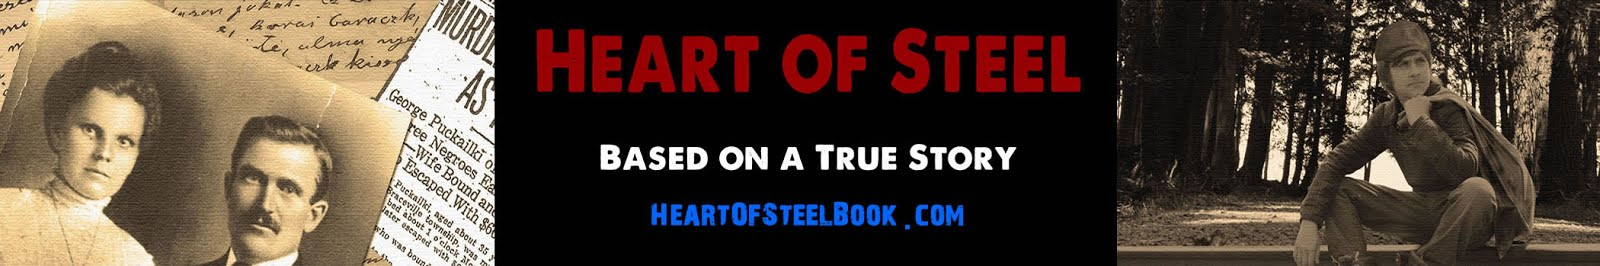 Heart Of Steel Book